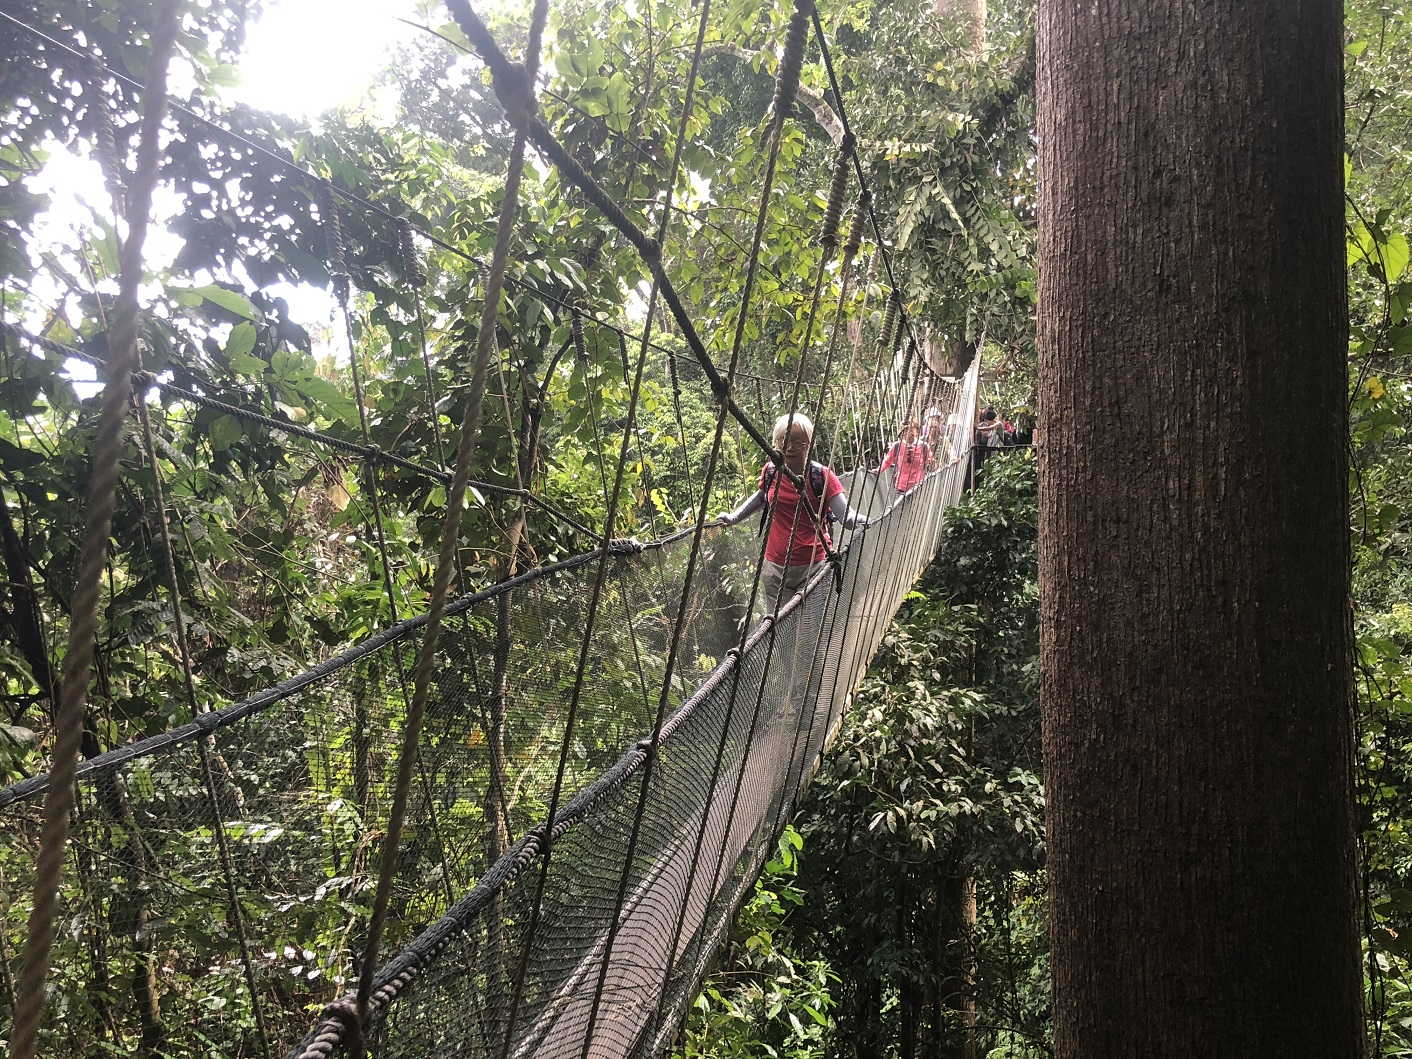 'Up close and personal' with the rainforest - enjoying the Poring Canopy Walkway